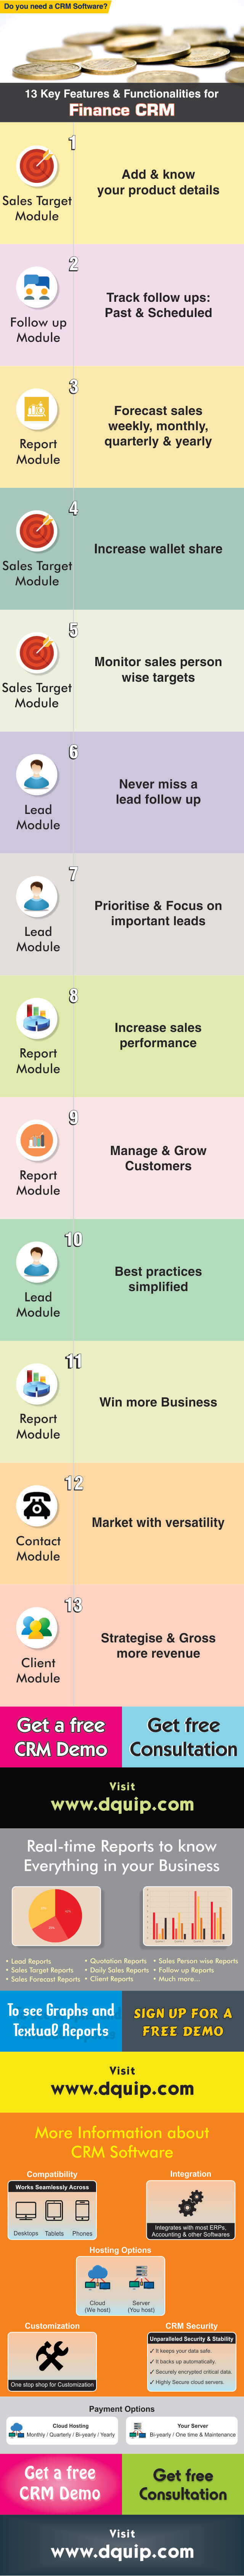 Infographic on Features and Functionalities of Financial Services CRM